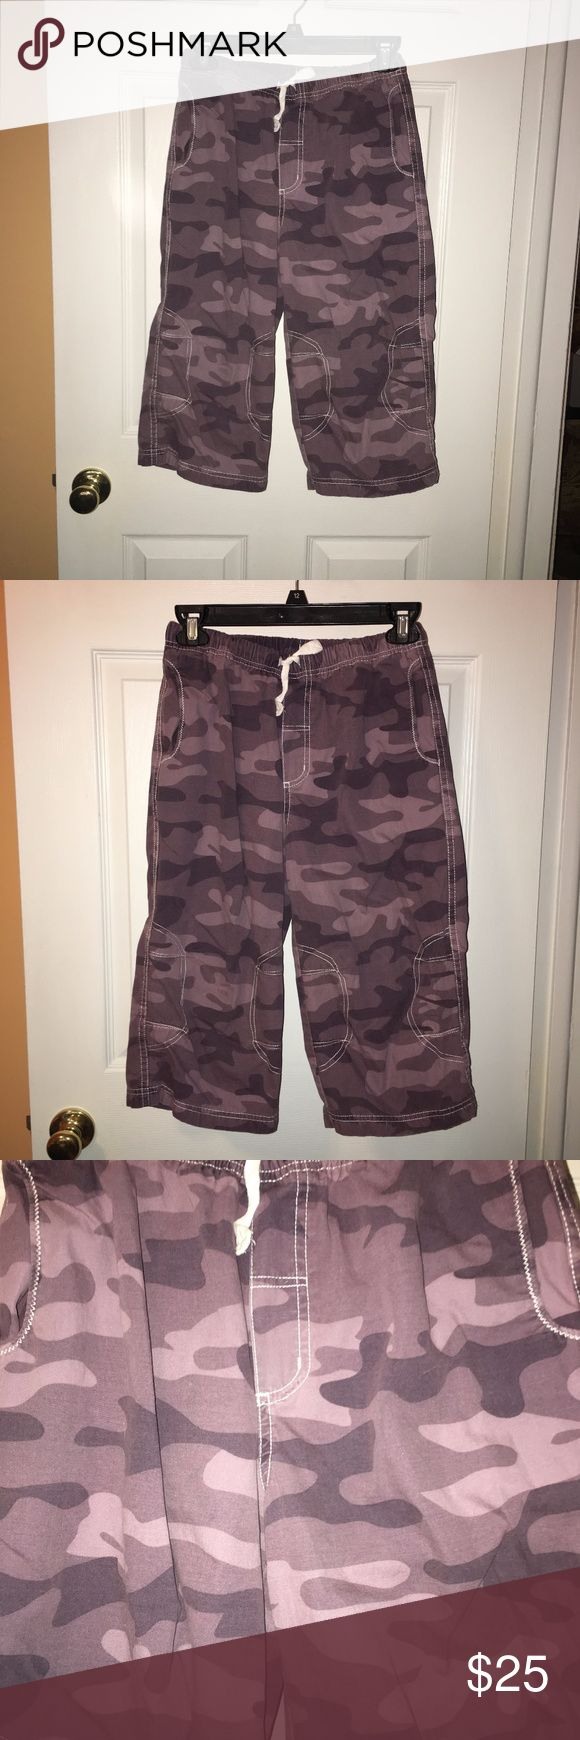 HANNA ANDERSSON Purple Cargo Camo Capri Pants Kids HANNA ANDERSSON Purple Cargo Camo Capri Pants 150/ US 12  *** I Post Pictures and approximate measurements for your reference only, please do your due diligence. #hannaandersson #kidshannaandersson #kidshannaanderssoncapripants #girlscamocapripantss12 #hannaanderssoncapripantssz150 Hanna Andersson Bottoms Casual